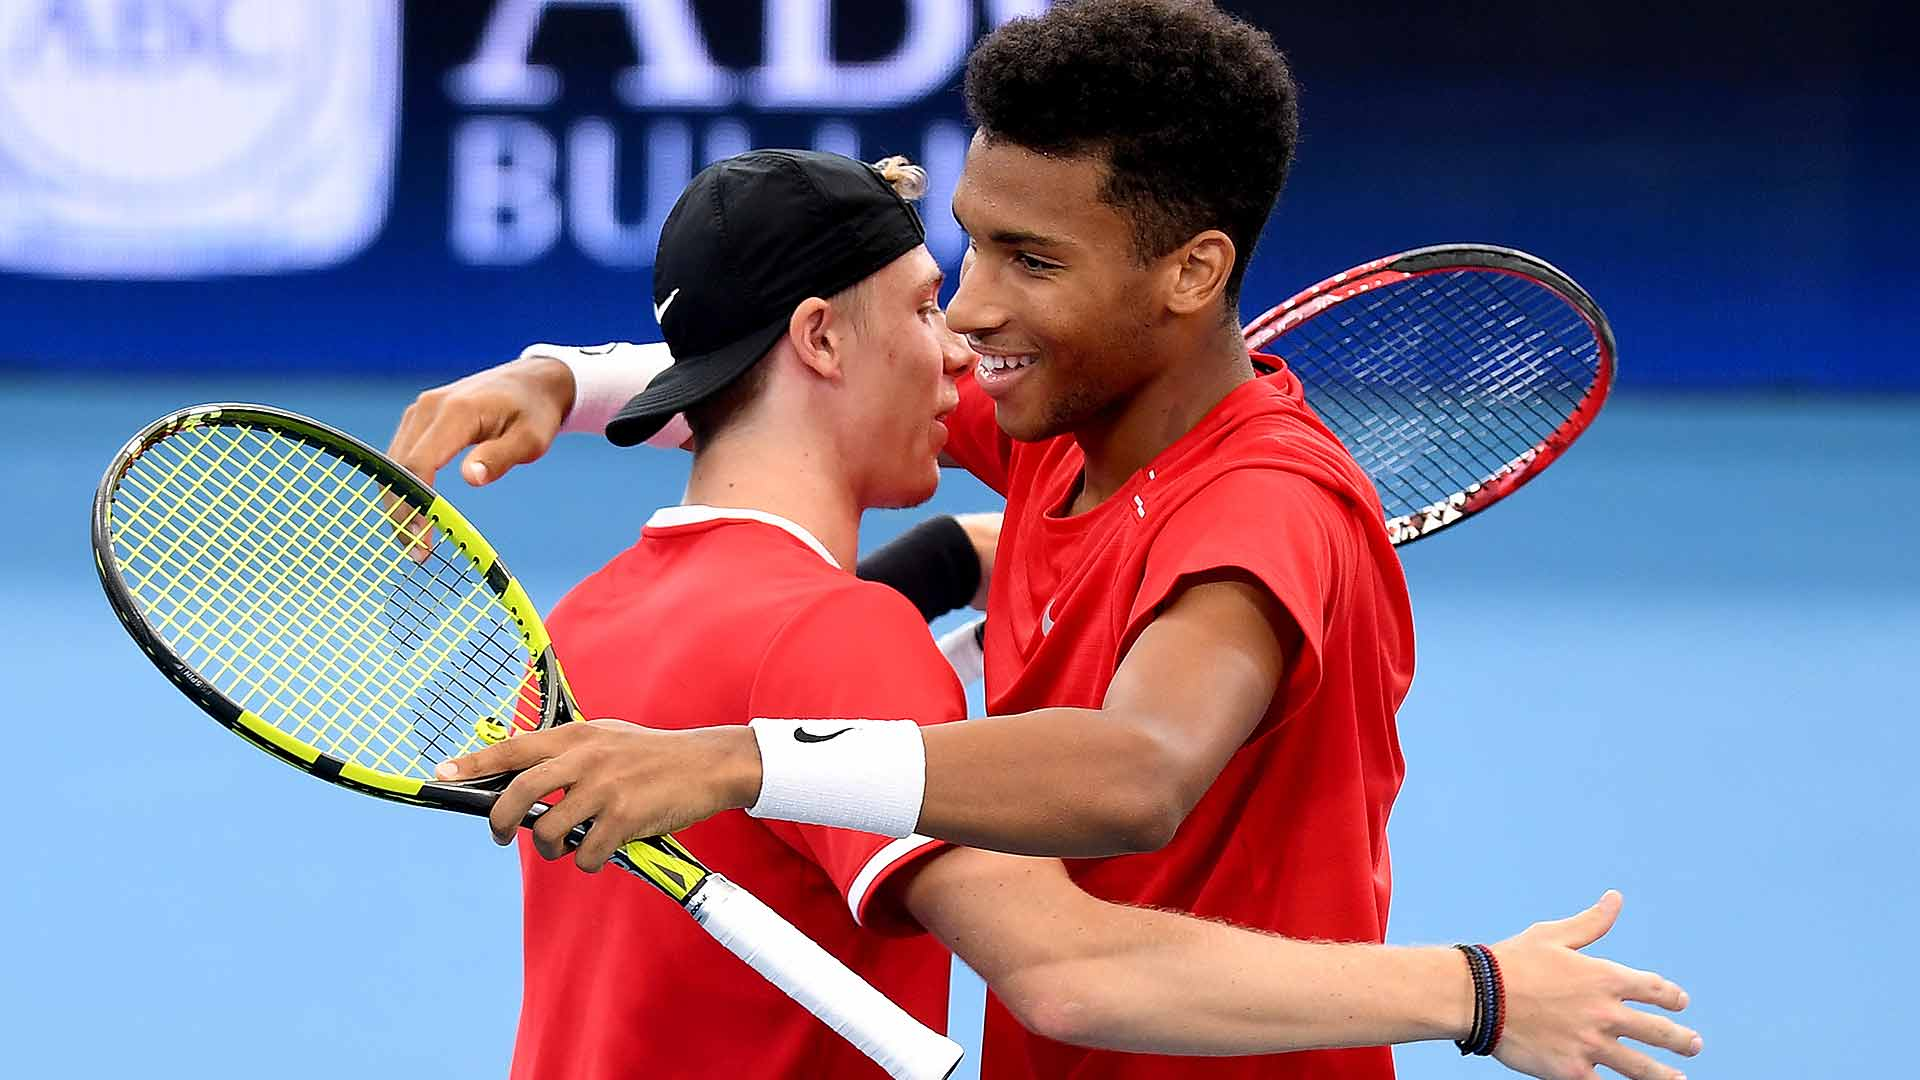 Denis Shapovalov/Felix Auger-Aliassime improve Canada to 2-1 on Tuesday at the ATP Cup in Brisbane.